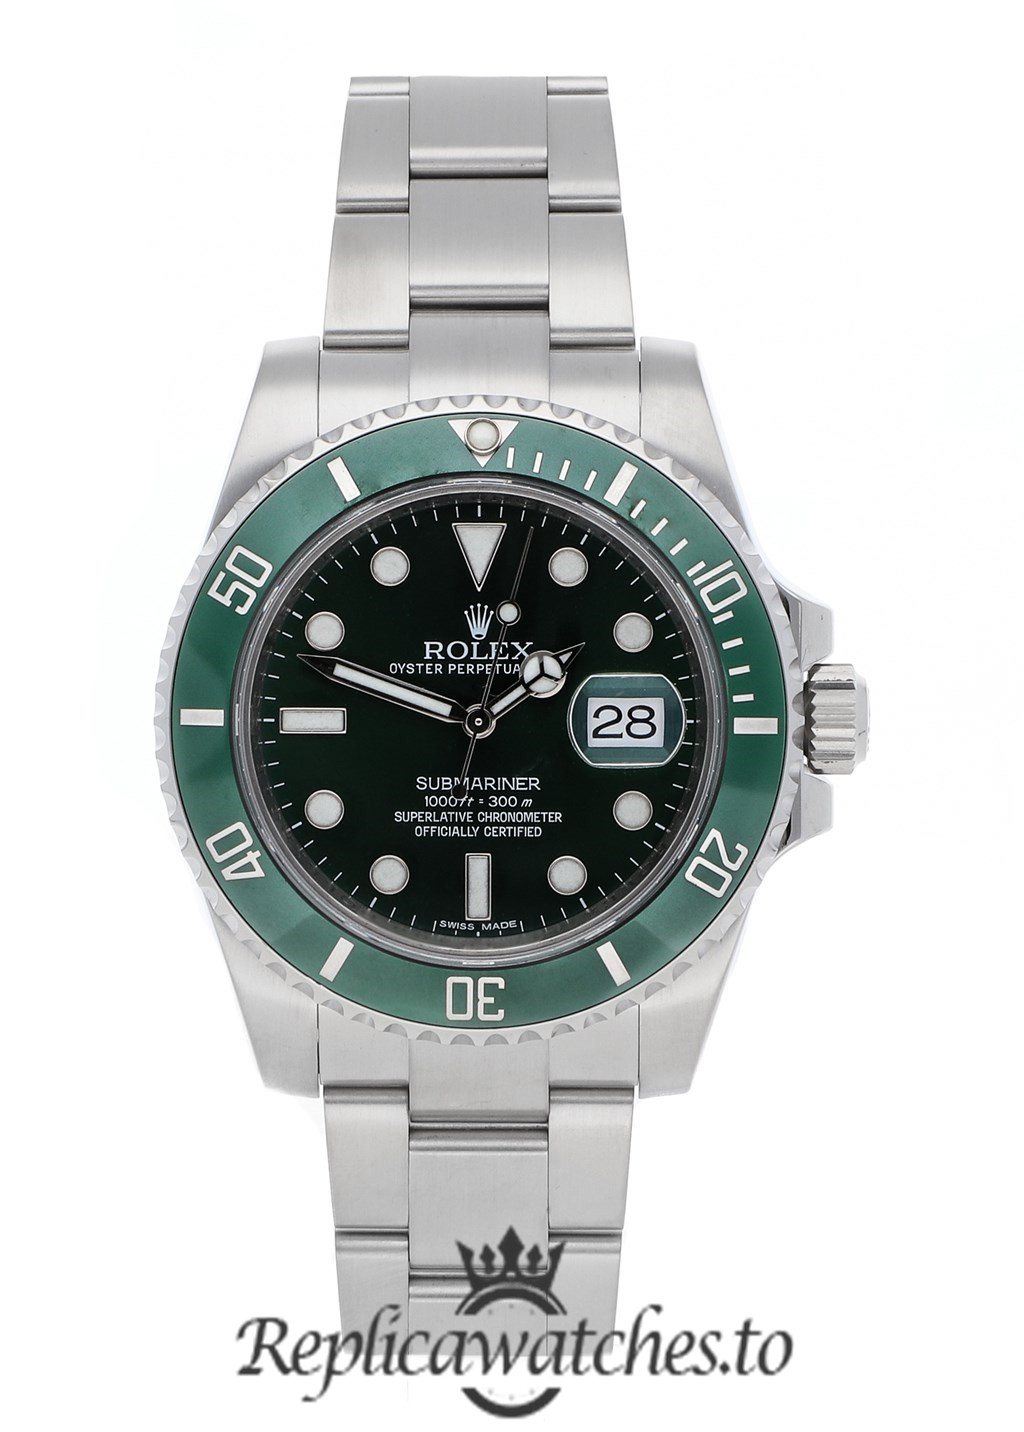 Rolex Submariner Replica 116610lv Green Bezel 40MM